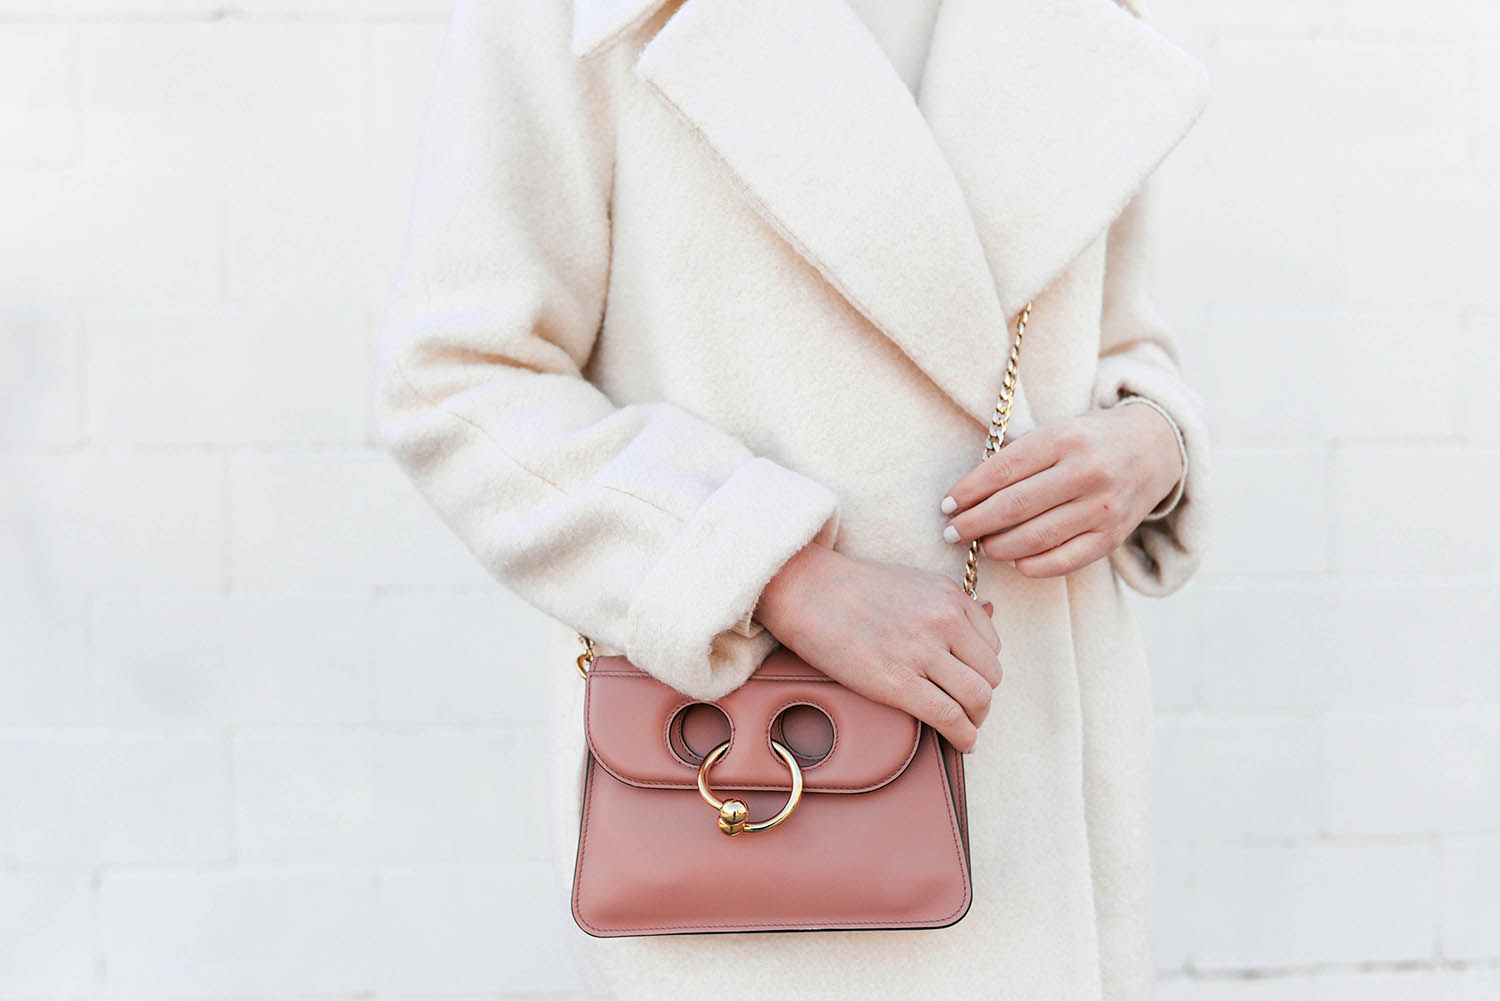 JW Anderson Mini Pierce Bag in Pink | The Style Scribe